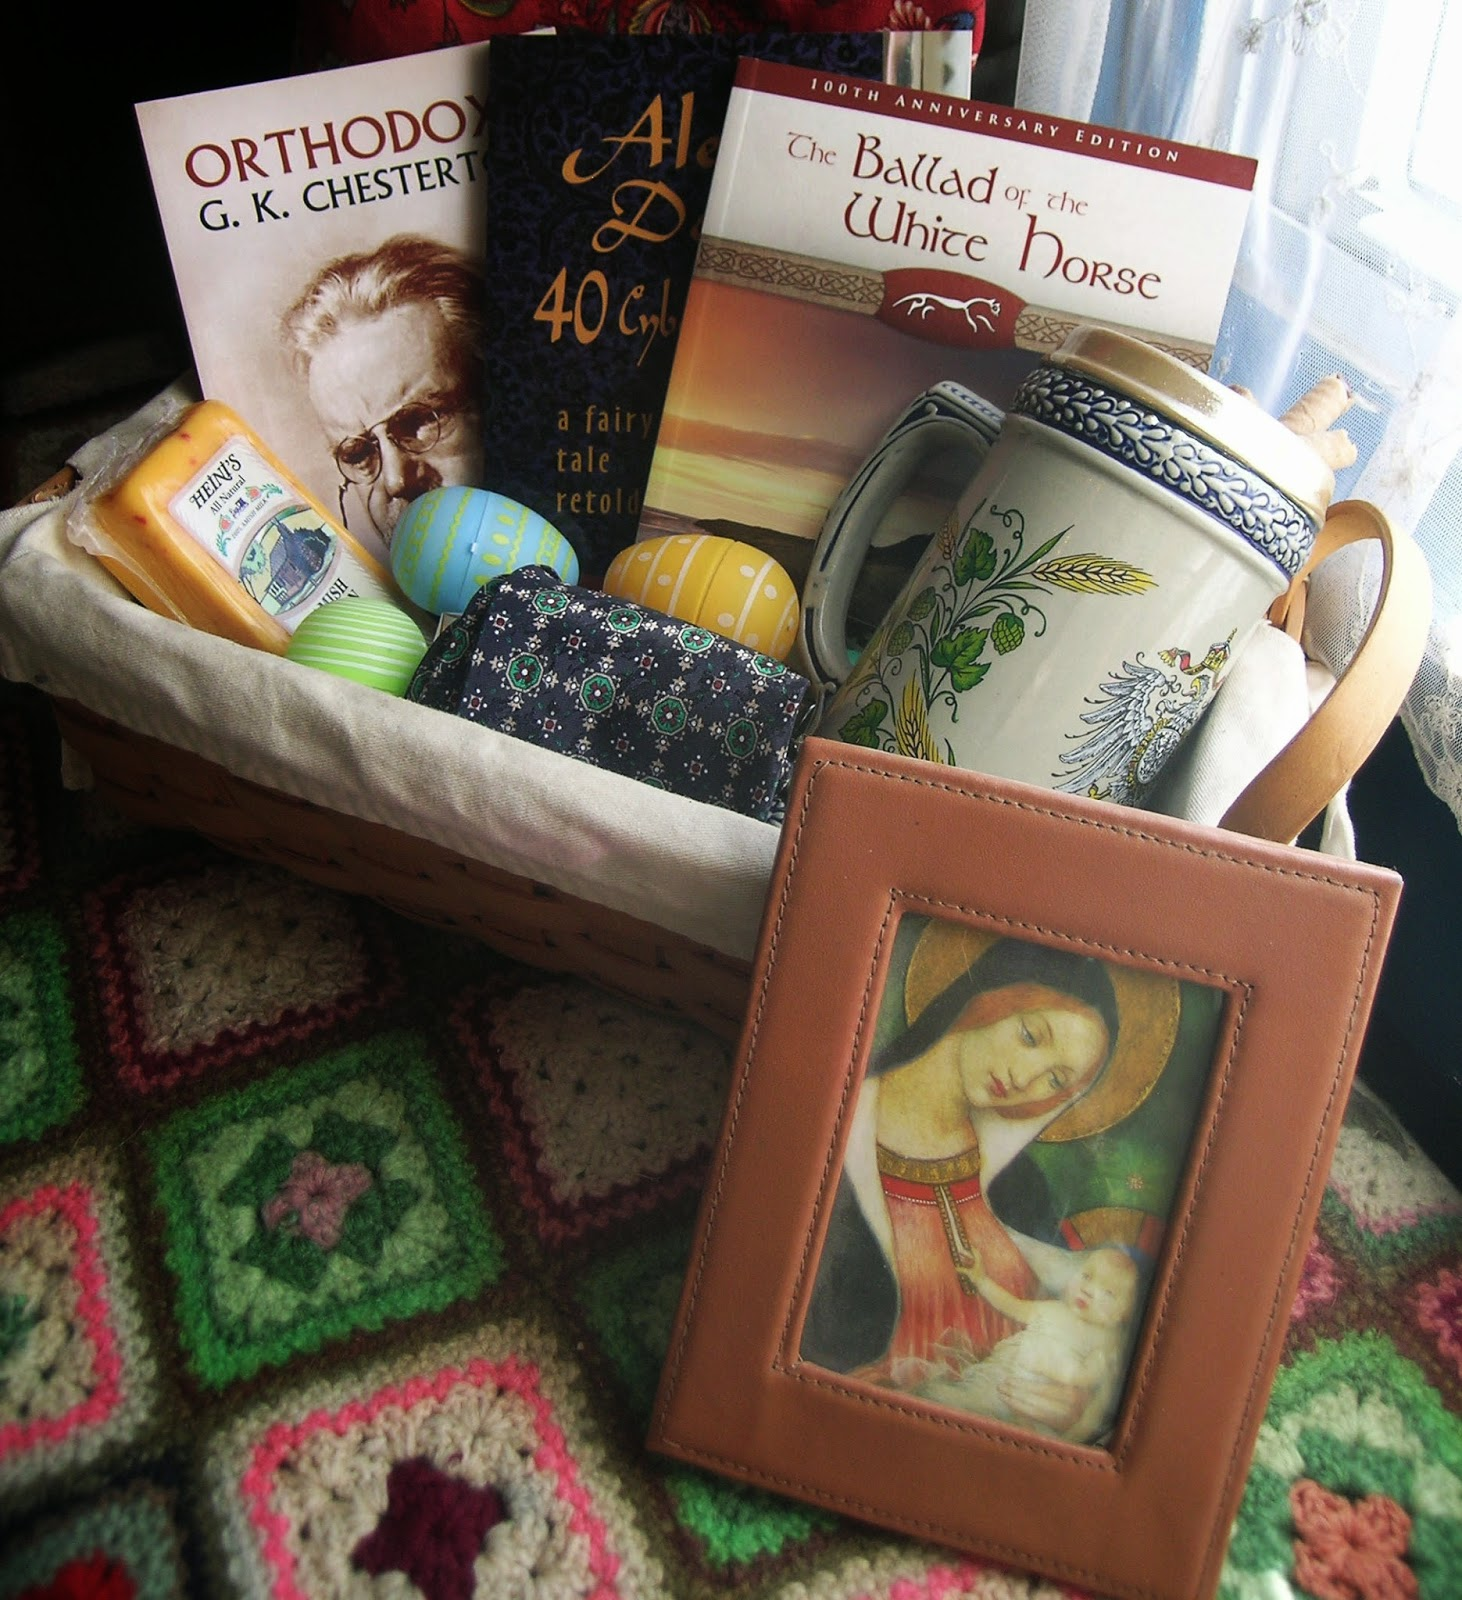 House art journal easter basket tour 2014 chesterton loving guy easter basket tour 2014 chesterton loving guy negle Choice Image